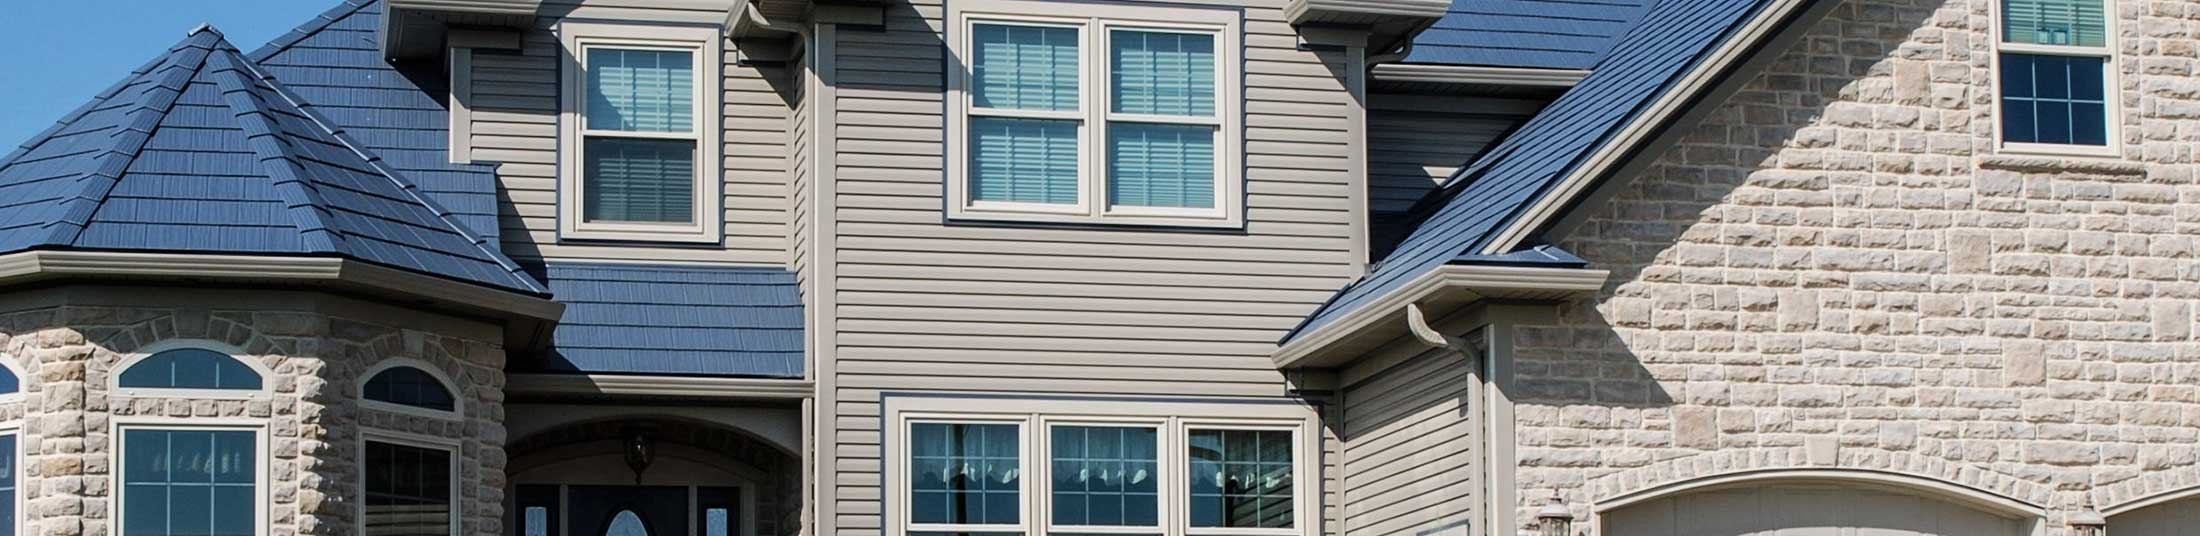 ABC Siding in Green Bay